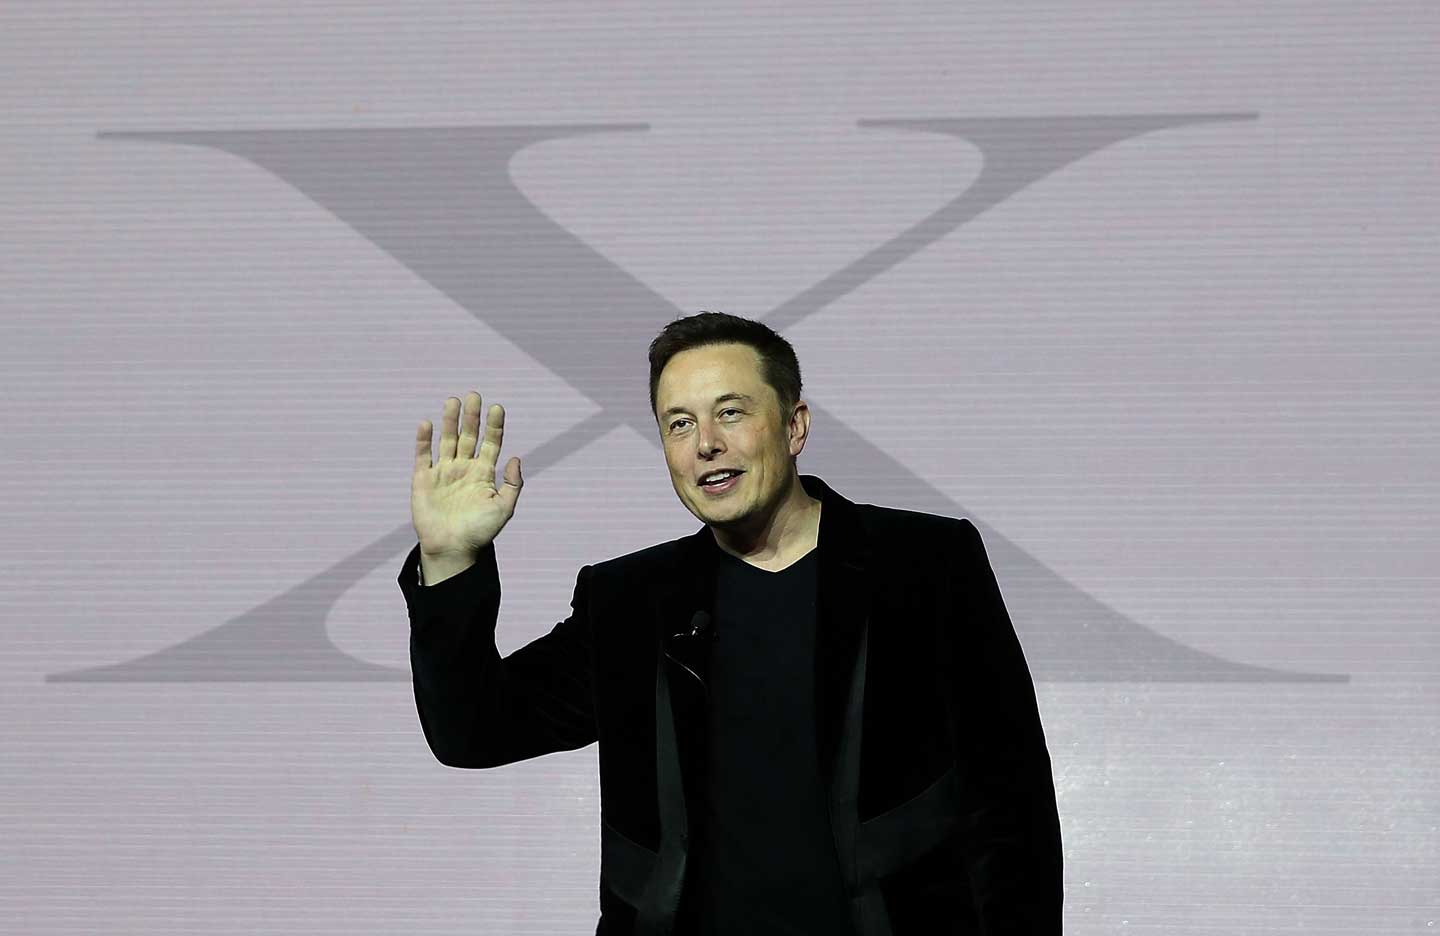 Tesla CEO Elon Musk speaks during an event to launch the new Tesla Model X Crossover SUV on September 29, 2015 in Fremont, California. Musk recently announced a major donation to Flint Community Schools. (Justin Sullivan/Getty Images)